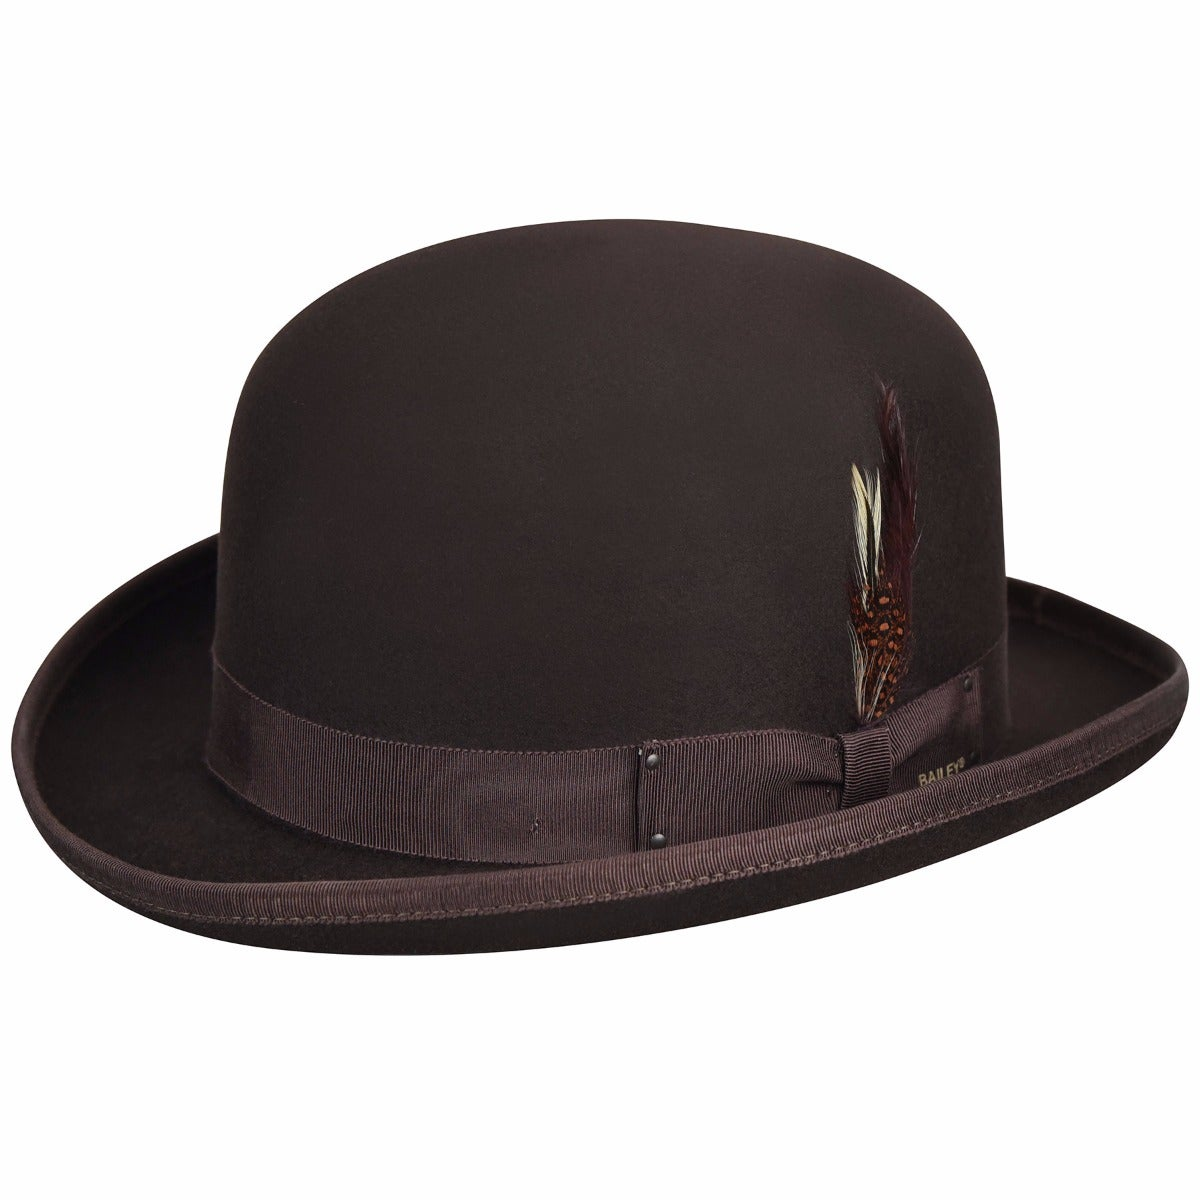 Bailey of Hollywood Derby Hat in Brown